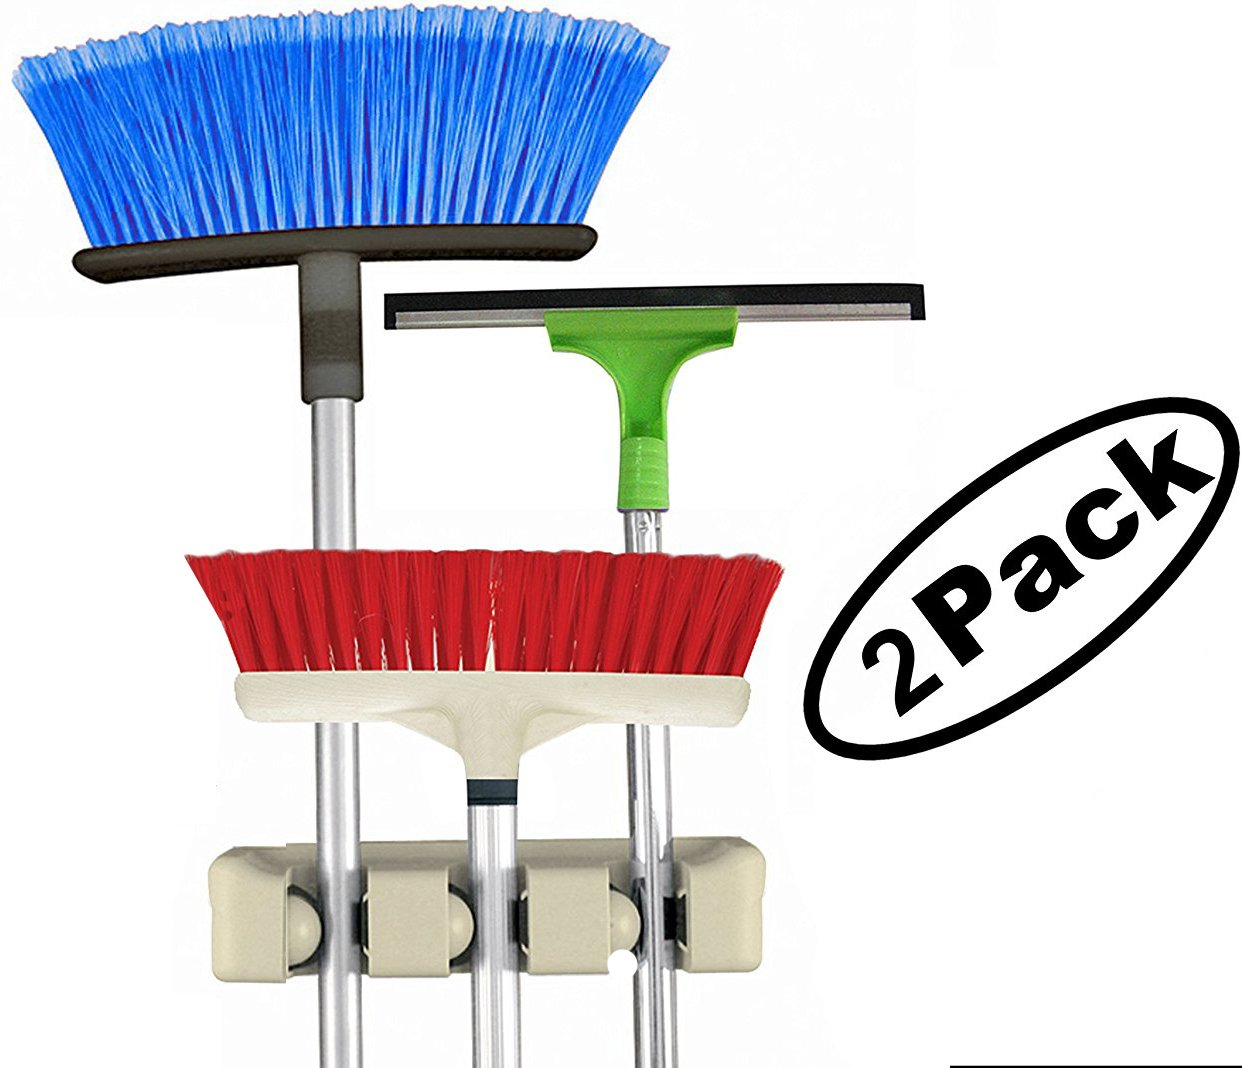 Quality Choice Broom Mop Tool Holder organizer, 3 Slots Organizers, Wall Mount 2 pack